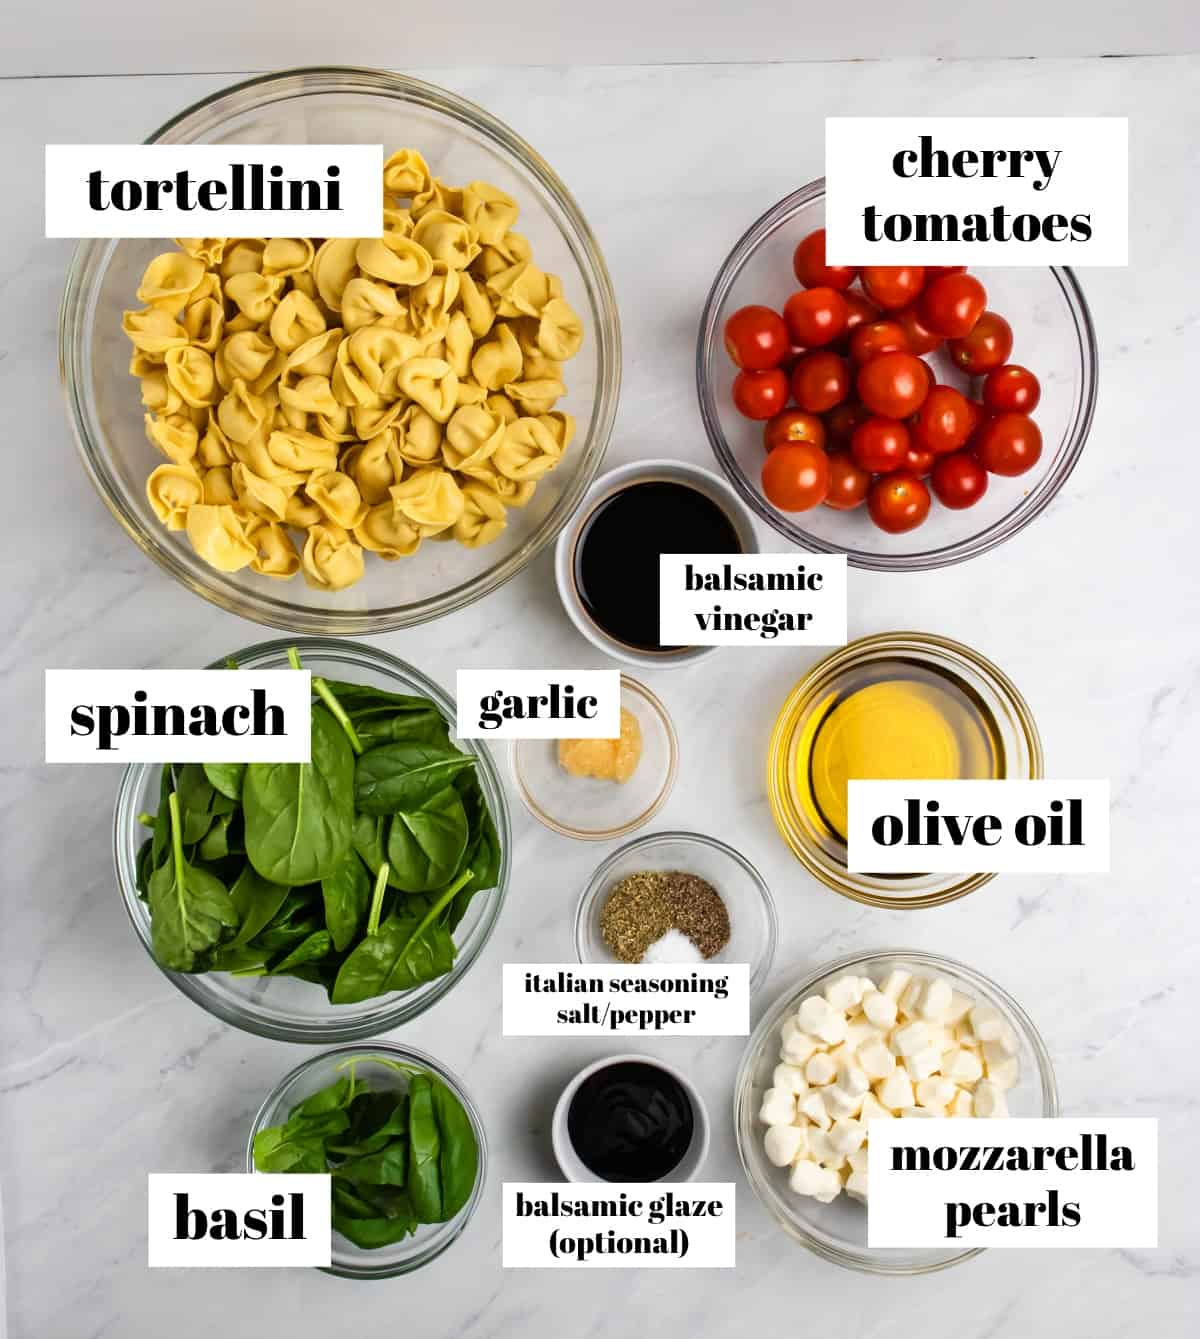 Tomatoes, mozzarella, tortellini, olive oil and other labeled ingredients on counter.